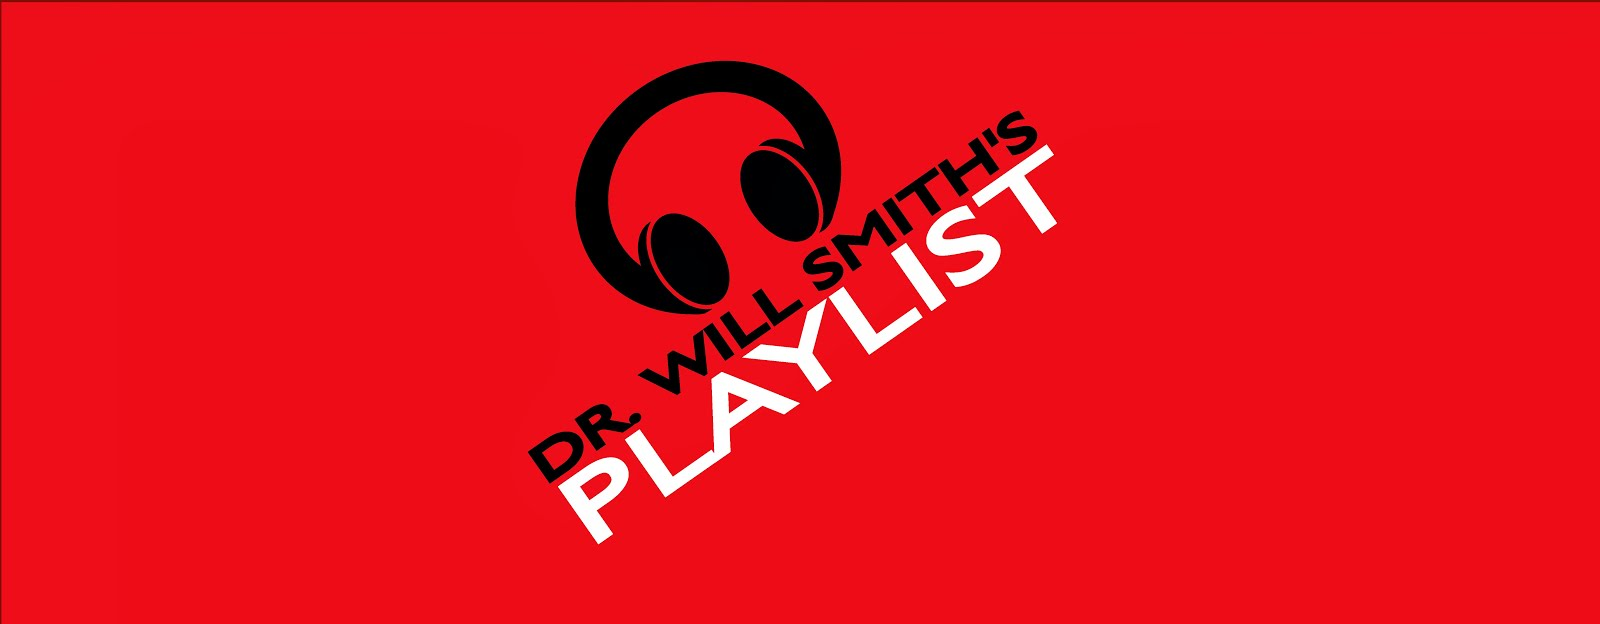 Dr. Will Smith's Playlist